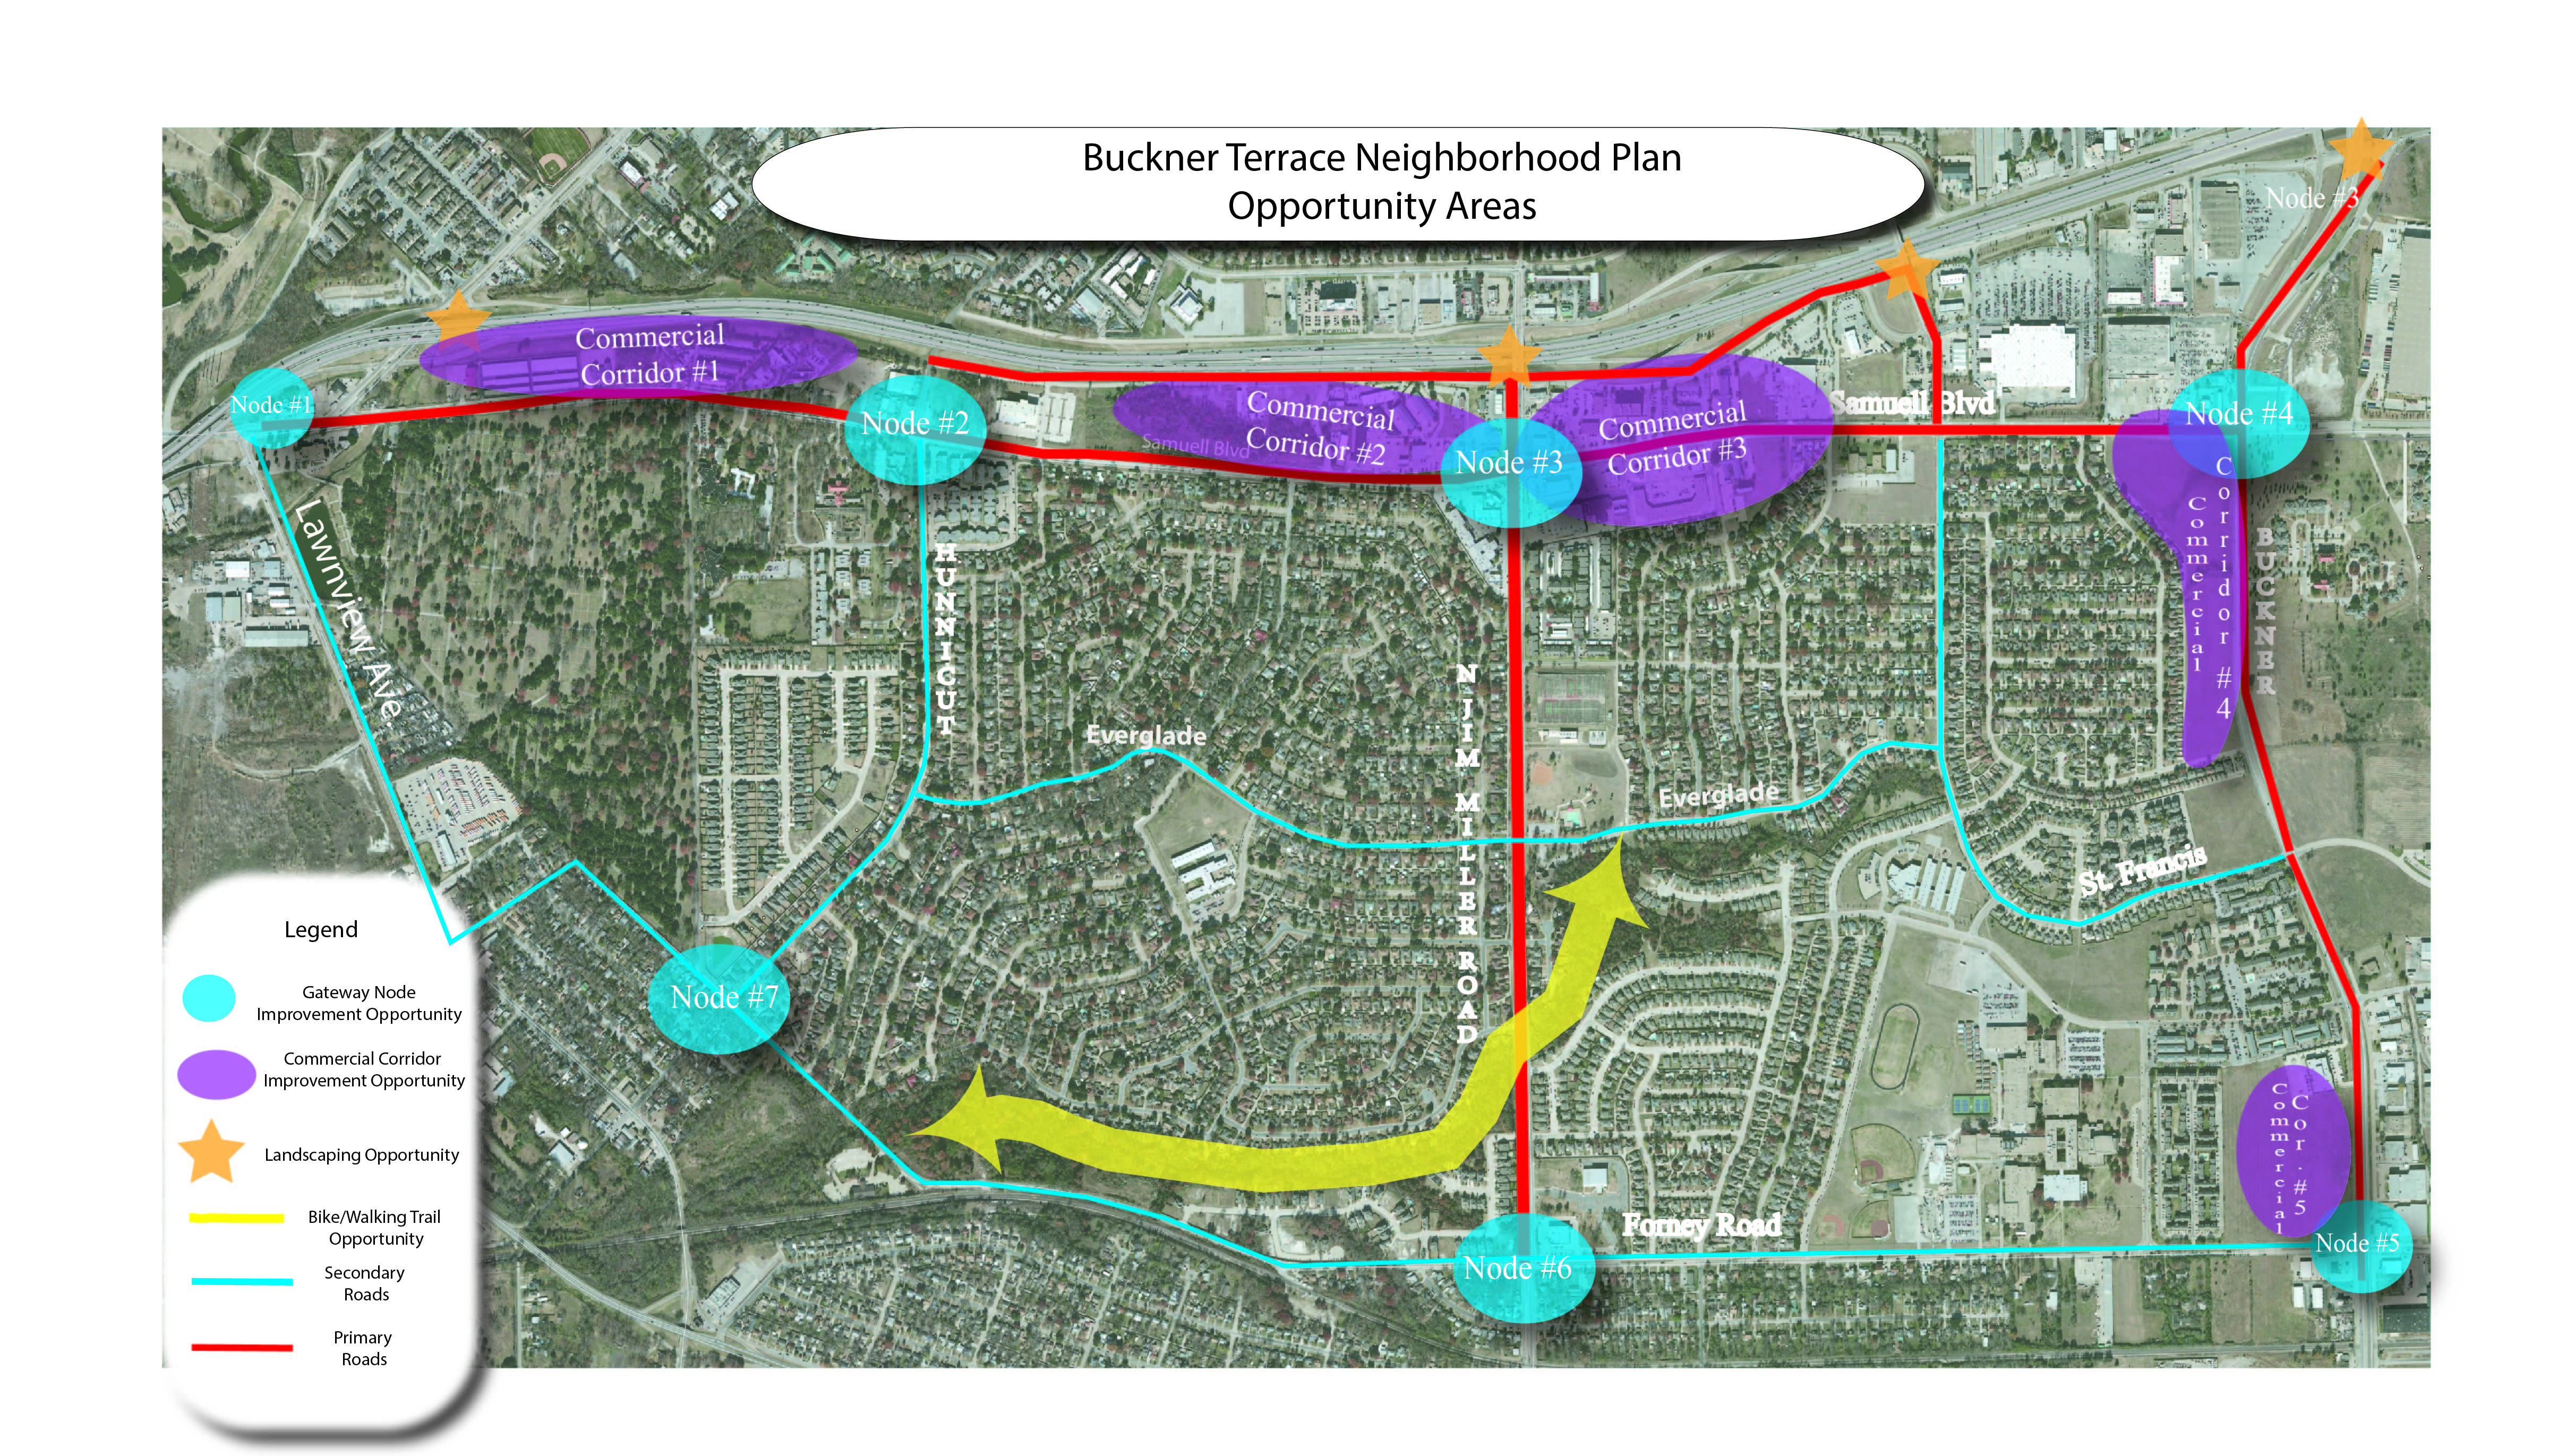 Buckner Terrace Neighborhood Plan